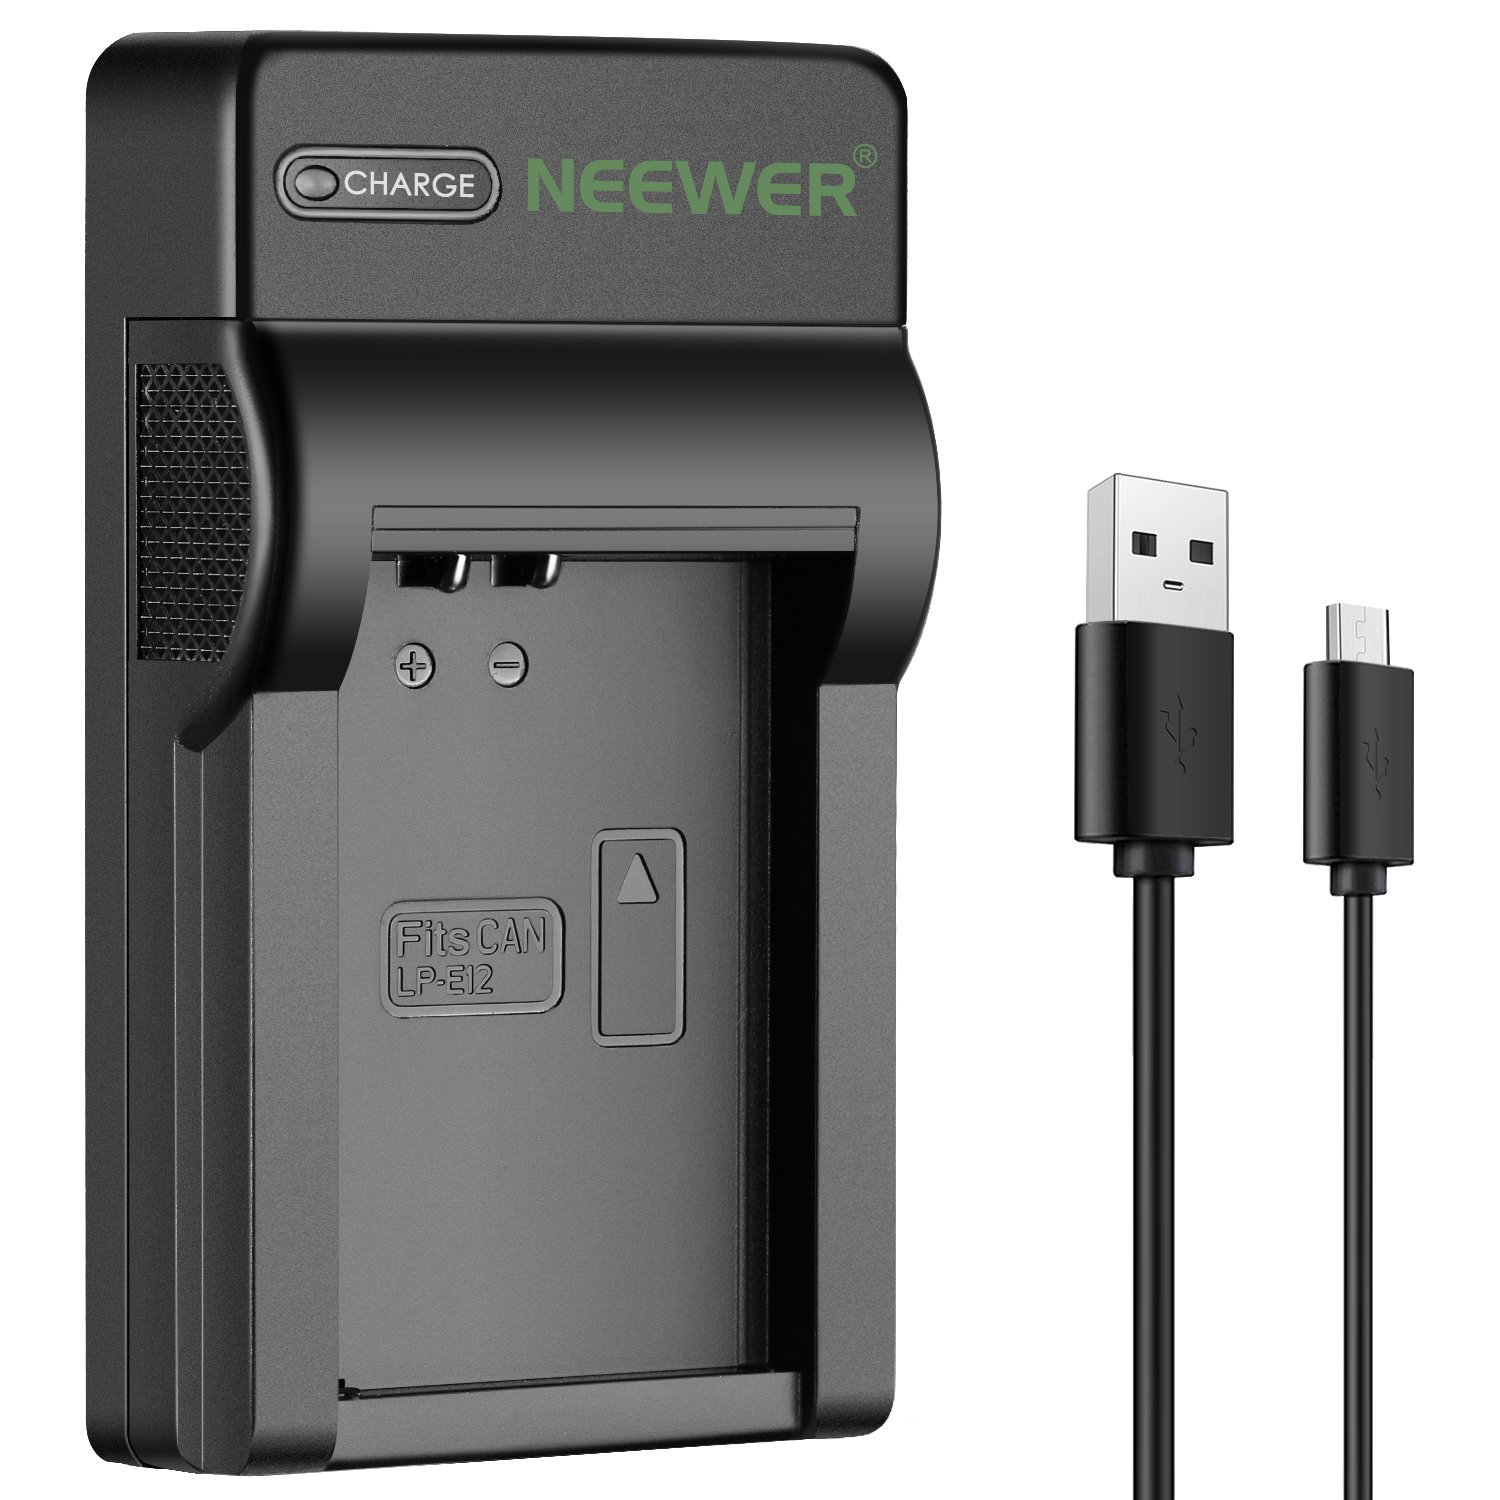 Neewer Micro USB Battery Charger for Canon LP-E12 Battery, Canon EOS M100, EOS M2, EOS M, EOS M10, EOS 100D, Rebel SL1 Mirrorless Digital SLR Cameras (Ultra Slim, Fast Charge) 10093106